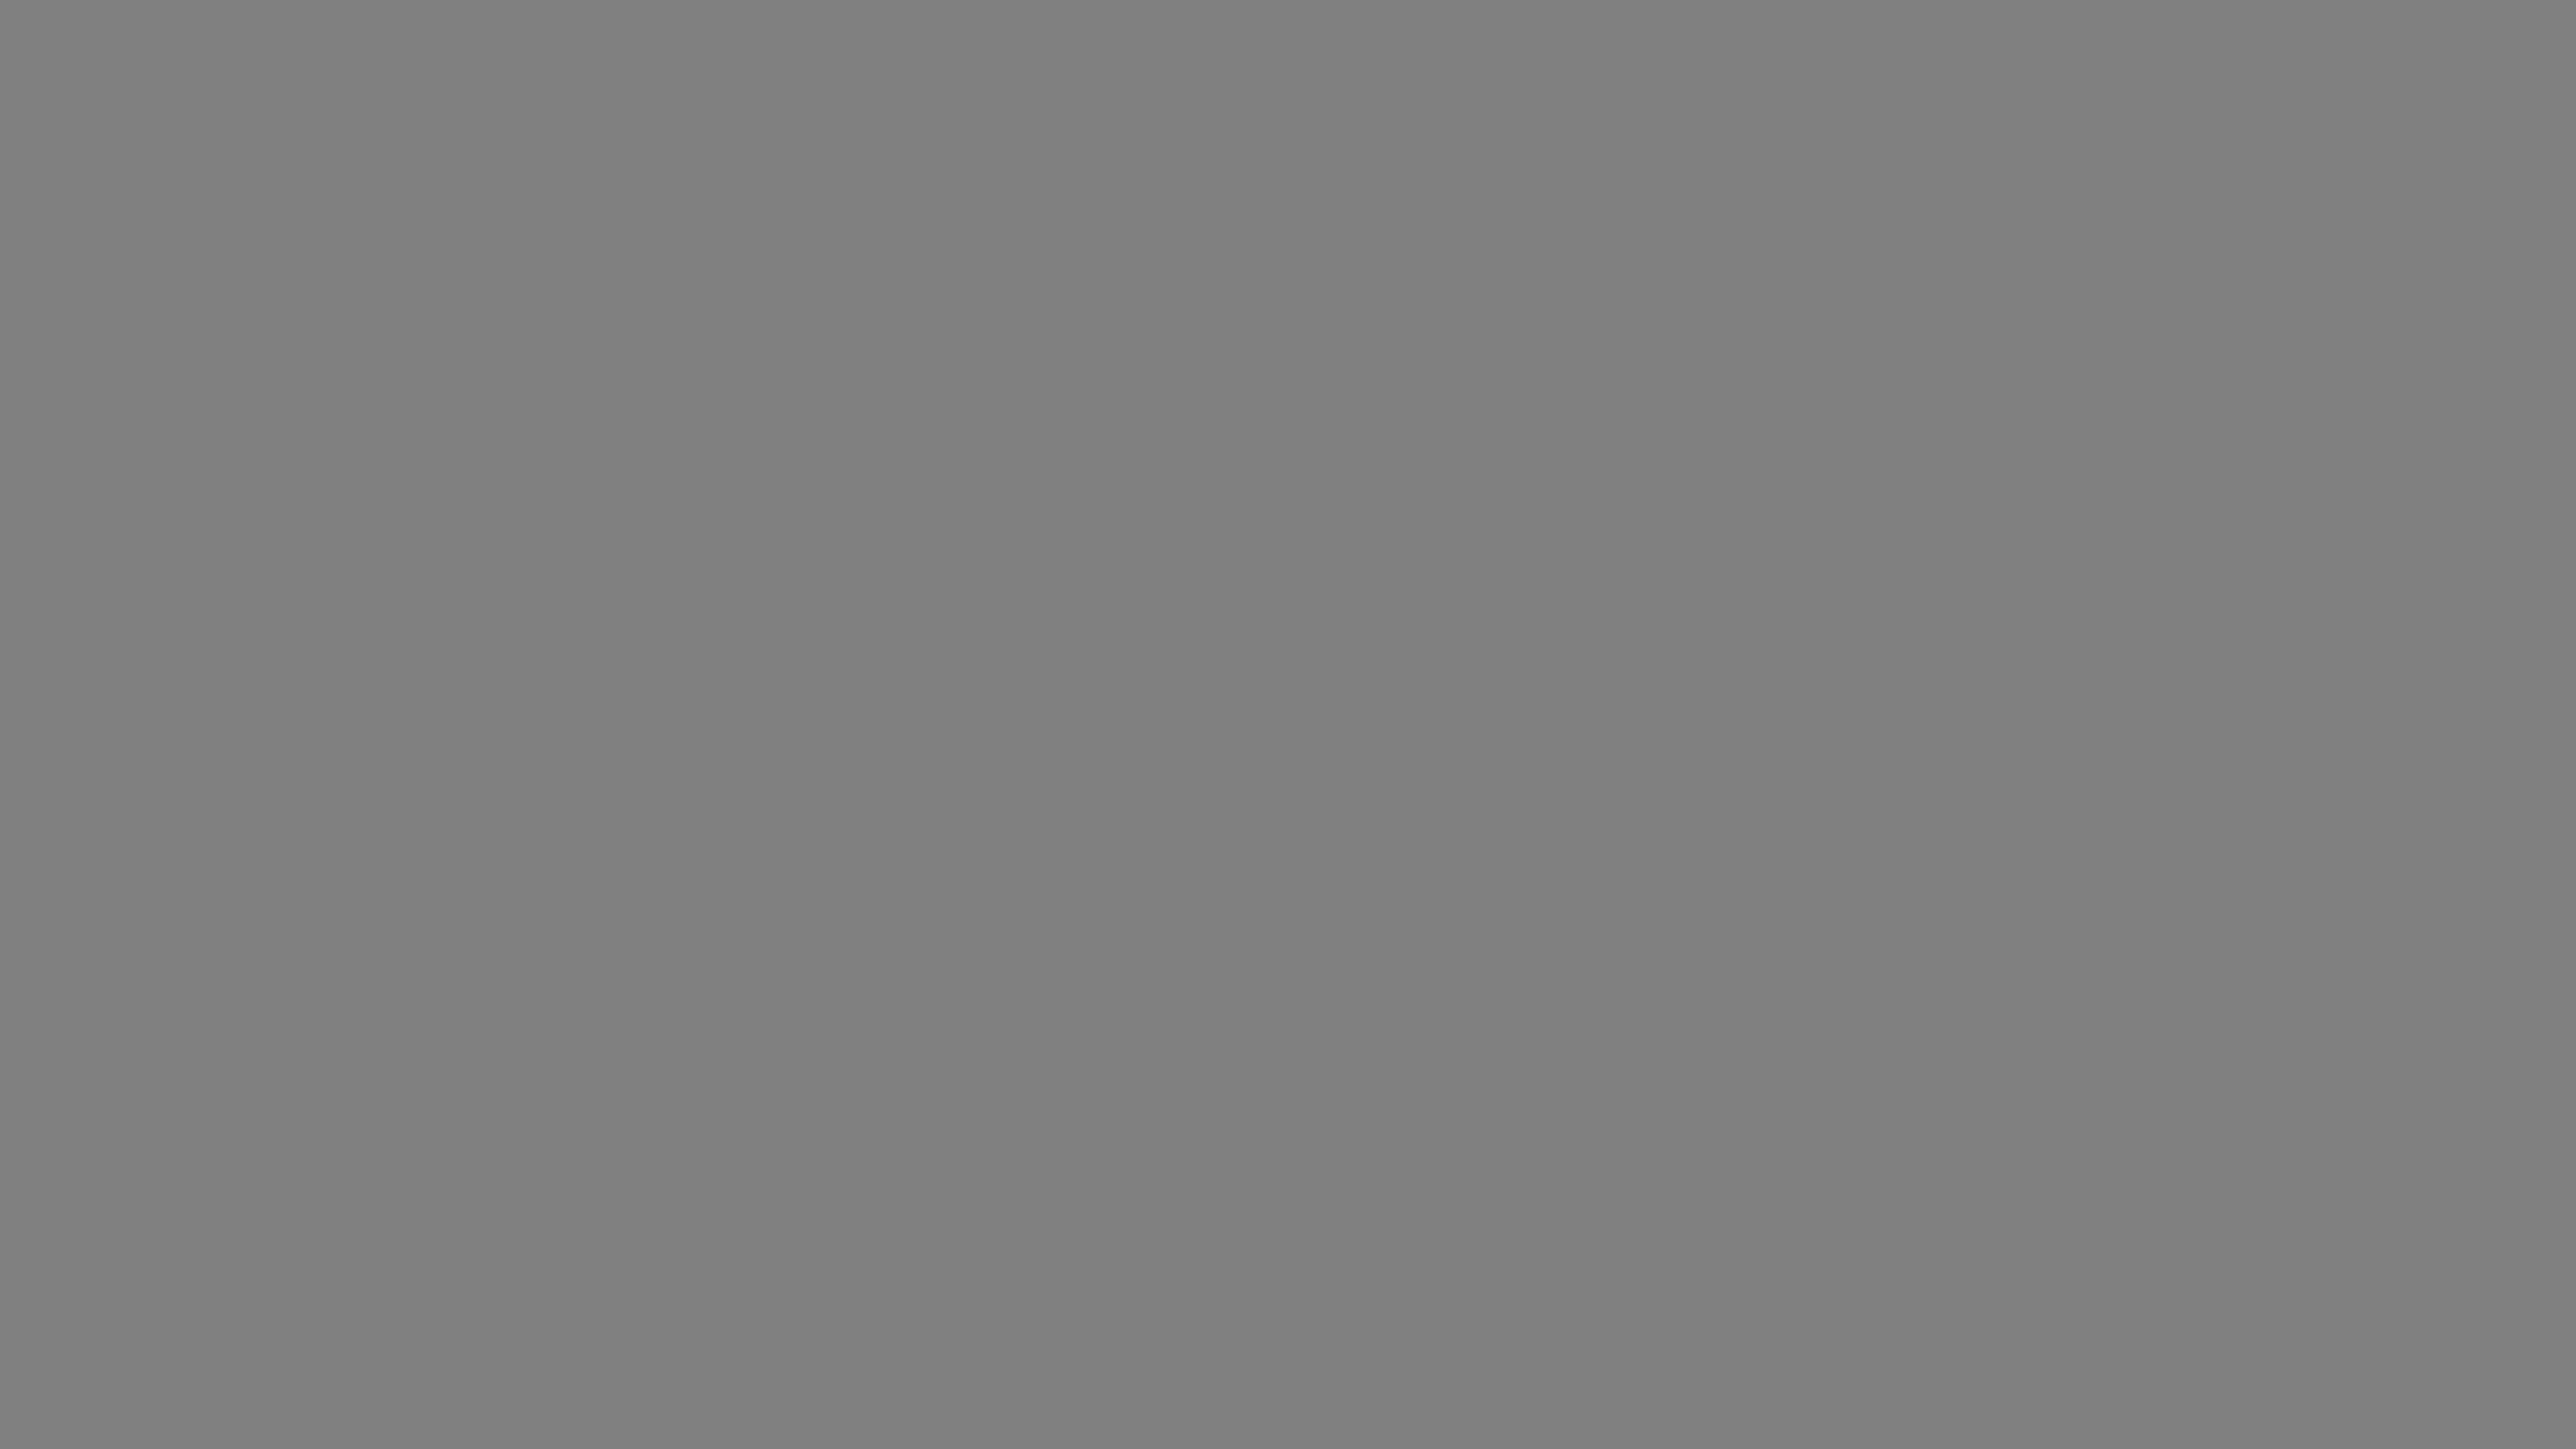 7680x4320 Trolley Grey Solid Color Background